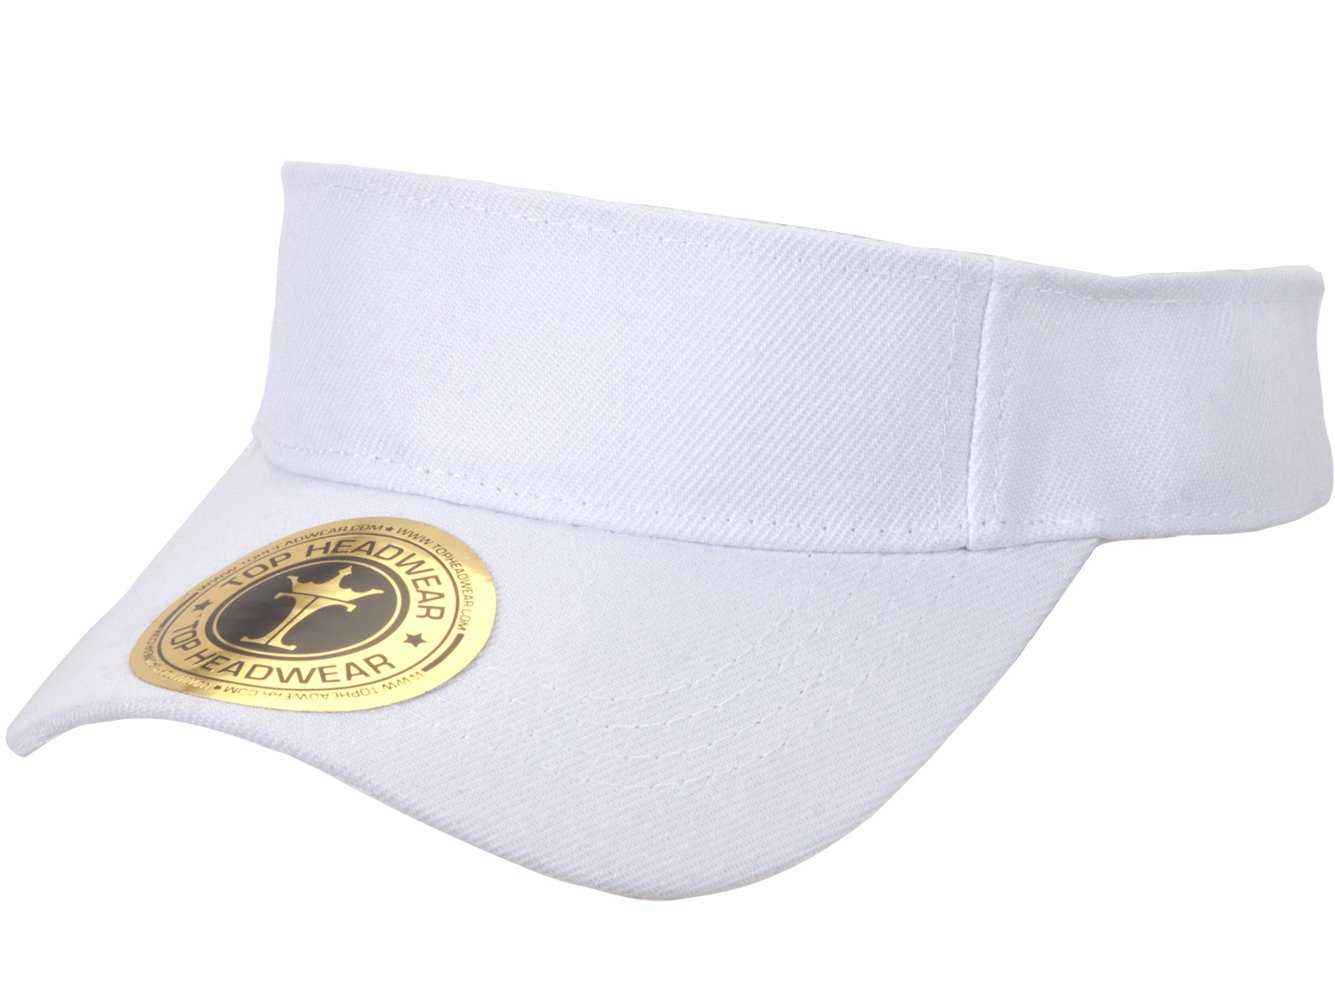 Solid Adjustable Sports Visor, White TOP HEADWEAR